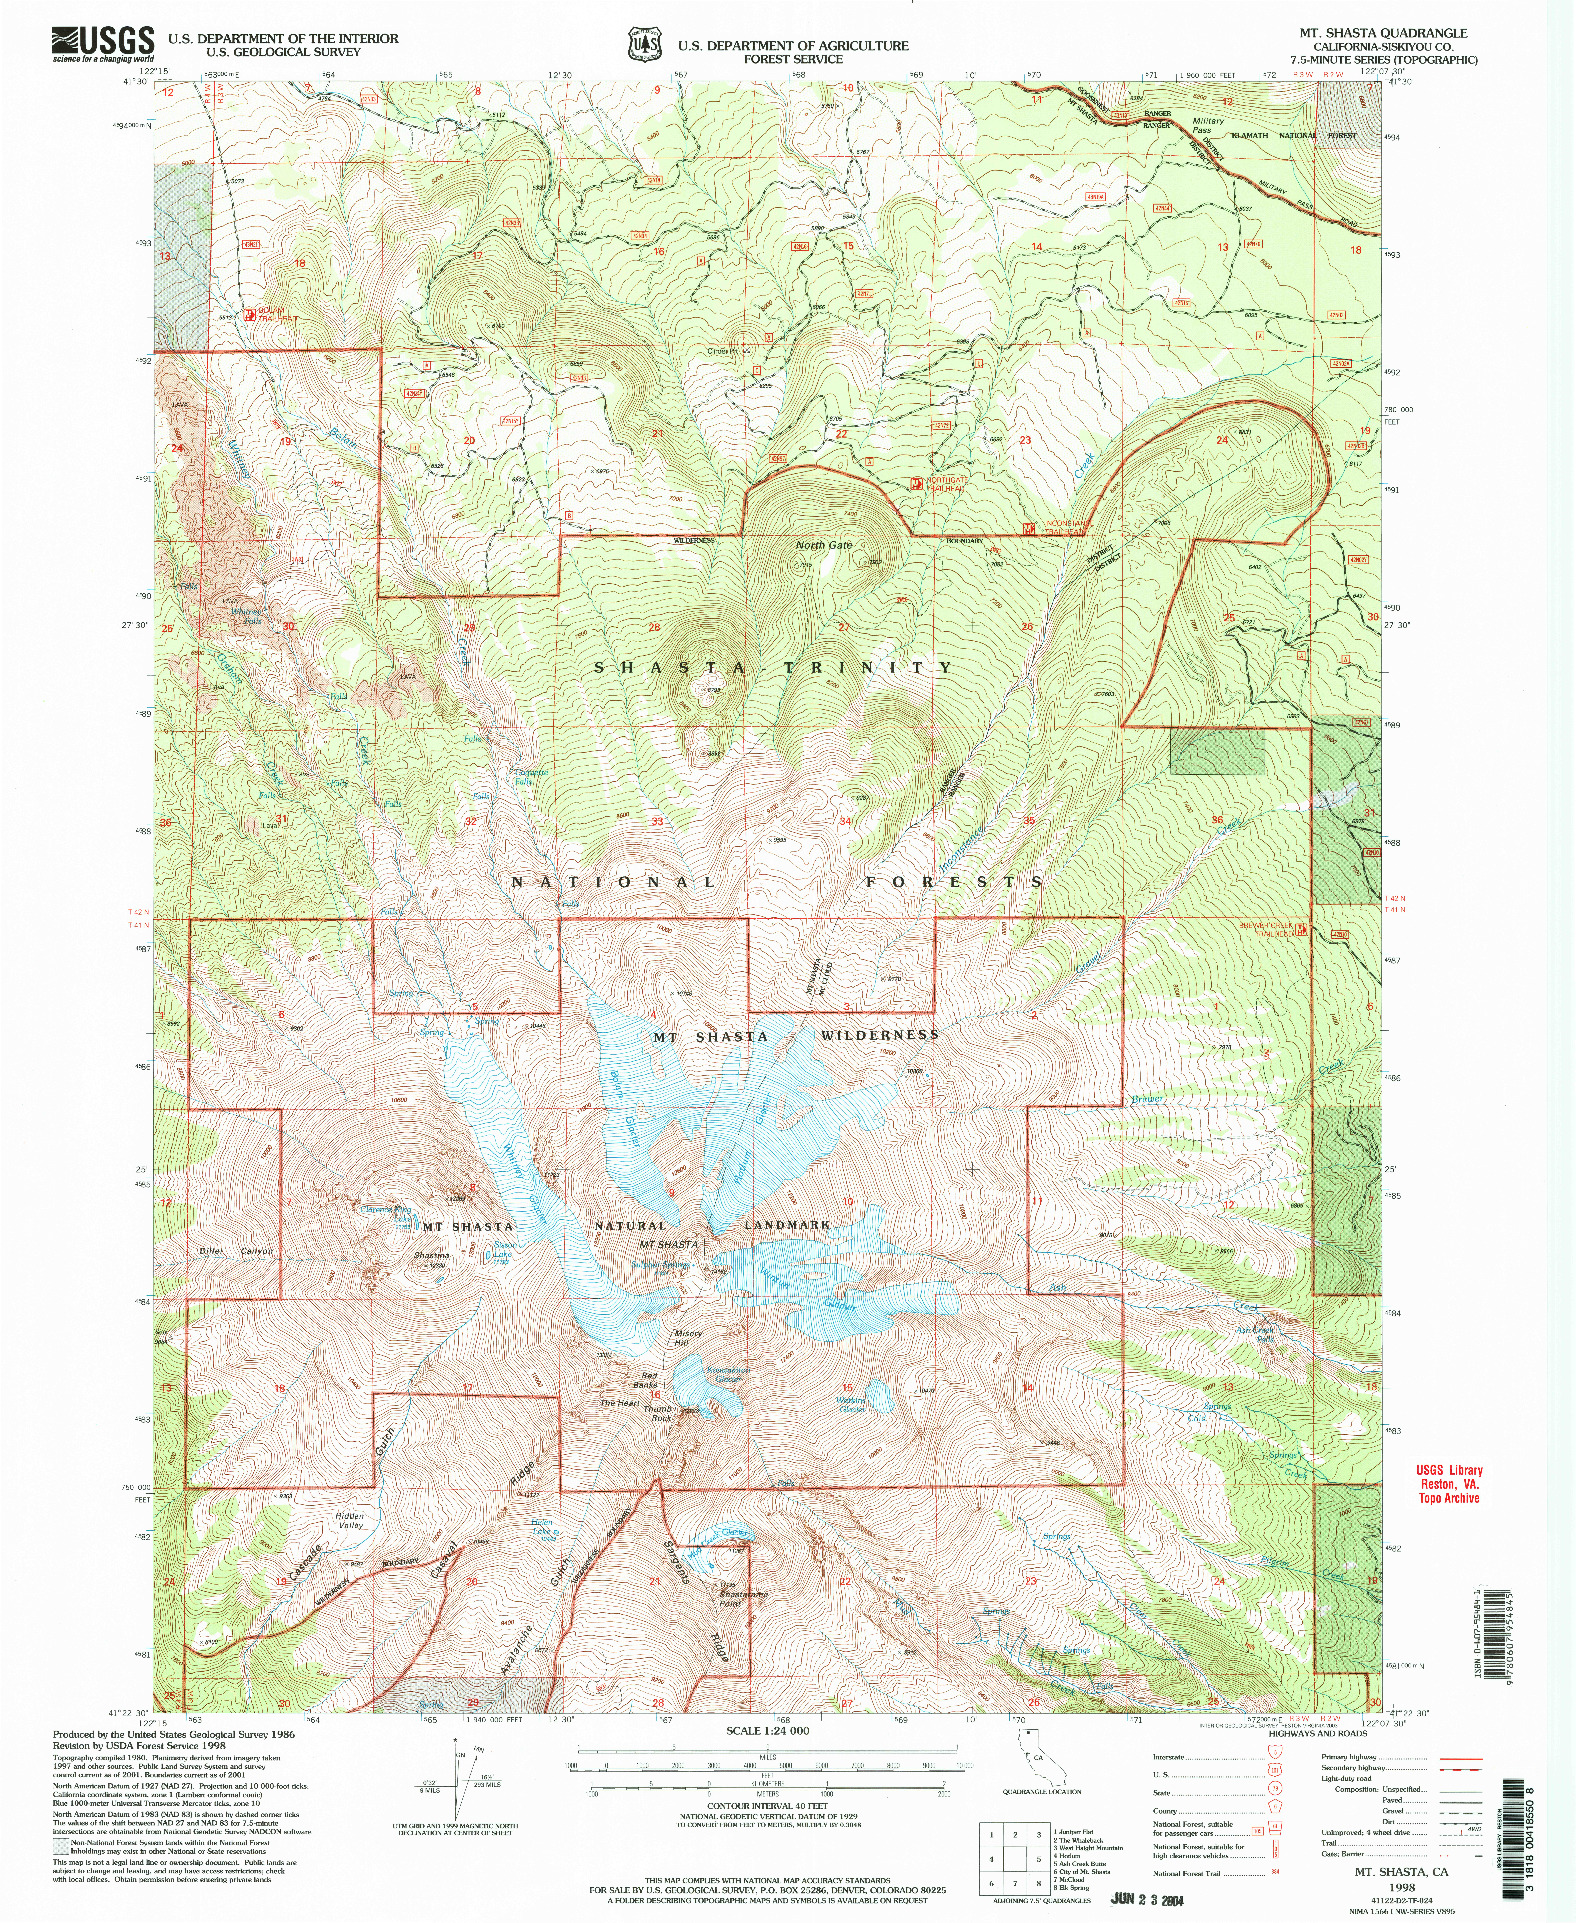 USGS 1:24000-SCALE QUADRANGLE FOR MT. SHASTA, CA 1998 on jamestown nd flood map, south fargo map, fargo nd flood map, west fargo nd zoning map, clay county nd map, city of fargo flood, city of center nd, city of west fargo nd, city of fargo gis, fargo nd on map, kirkwood mall bismarck nd map, city of bismarck nd map, city of grand forks nd map, fargo north dakota map, fargo road map, fargo street map, fargo district map, fargo nd zip code map, city of fargo north dakota, city of dickinson nd map,